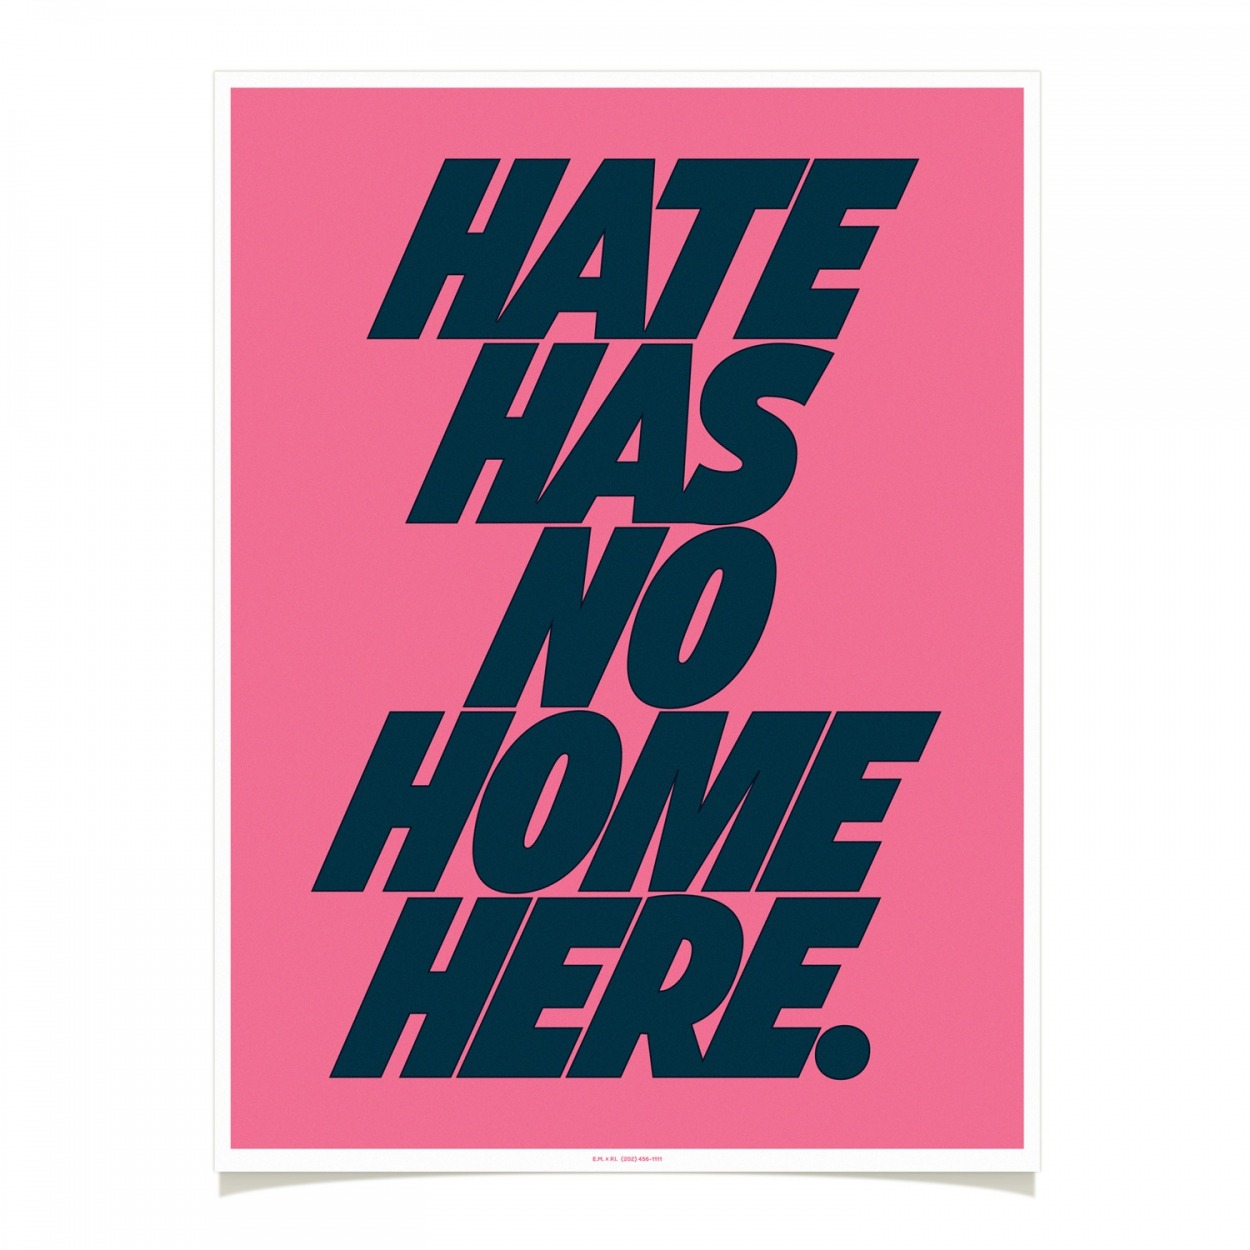 HATE HAS NO HOME HERE    FoT Shop  by  Erik Marinovich